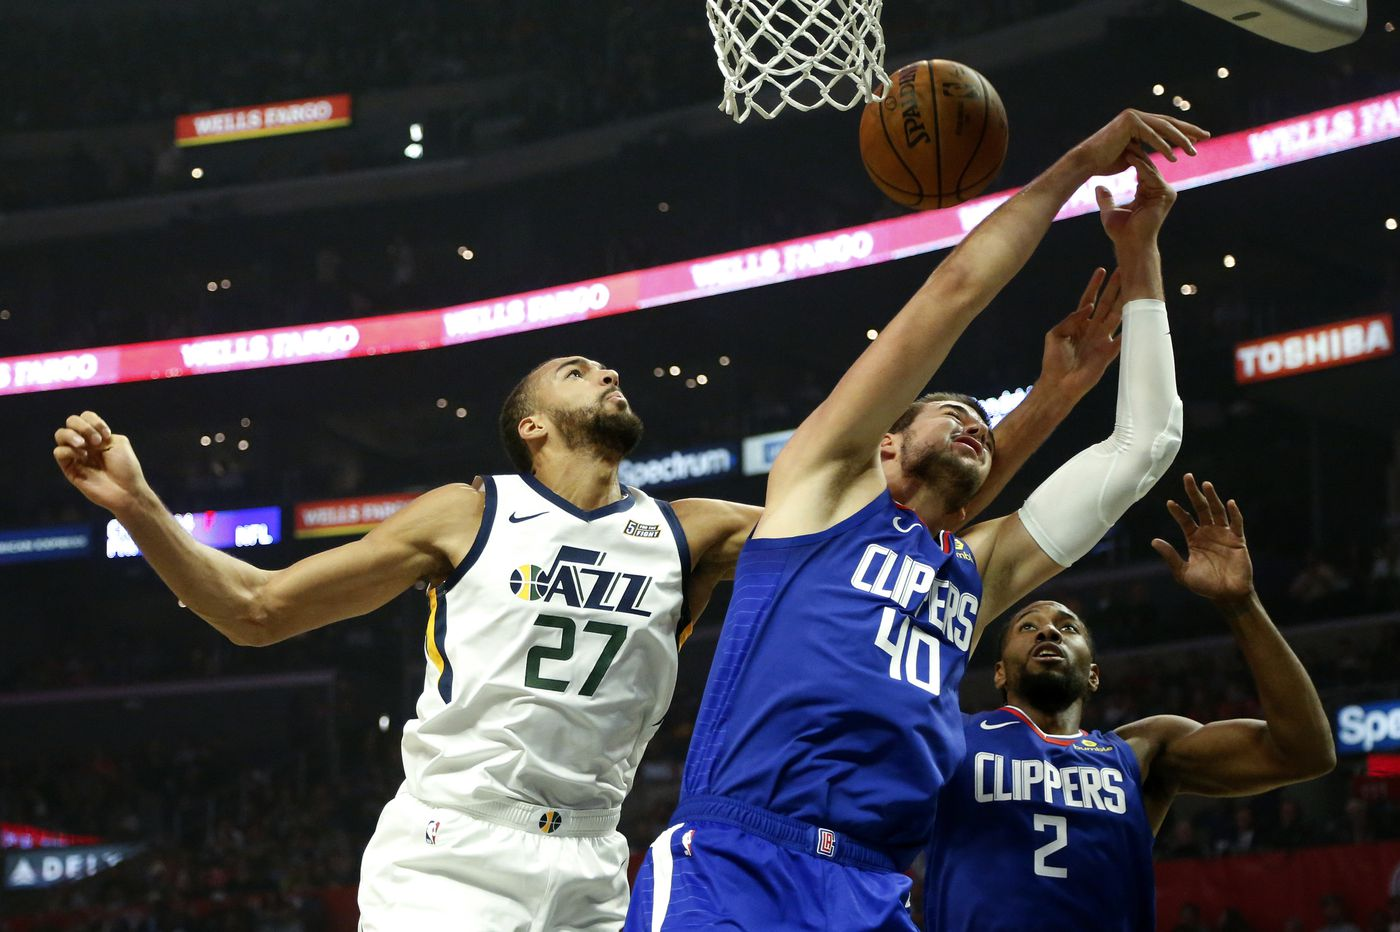 Sixers podcast: Utah Jazz game, Josh Richardson's shooting, reaction to Ben Simmons' night